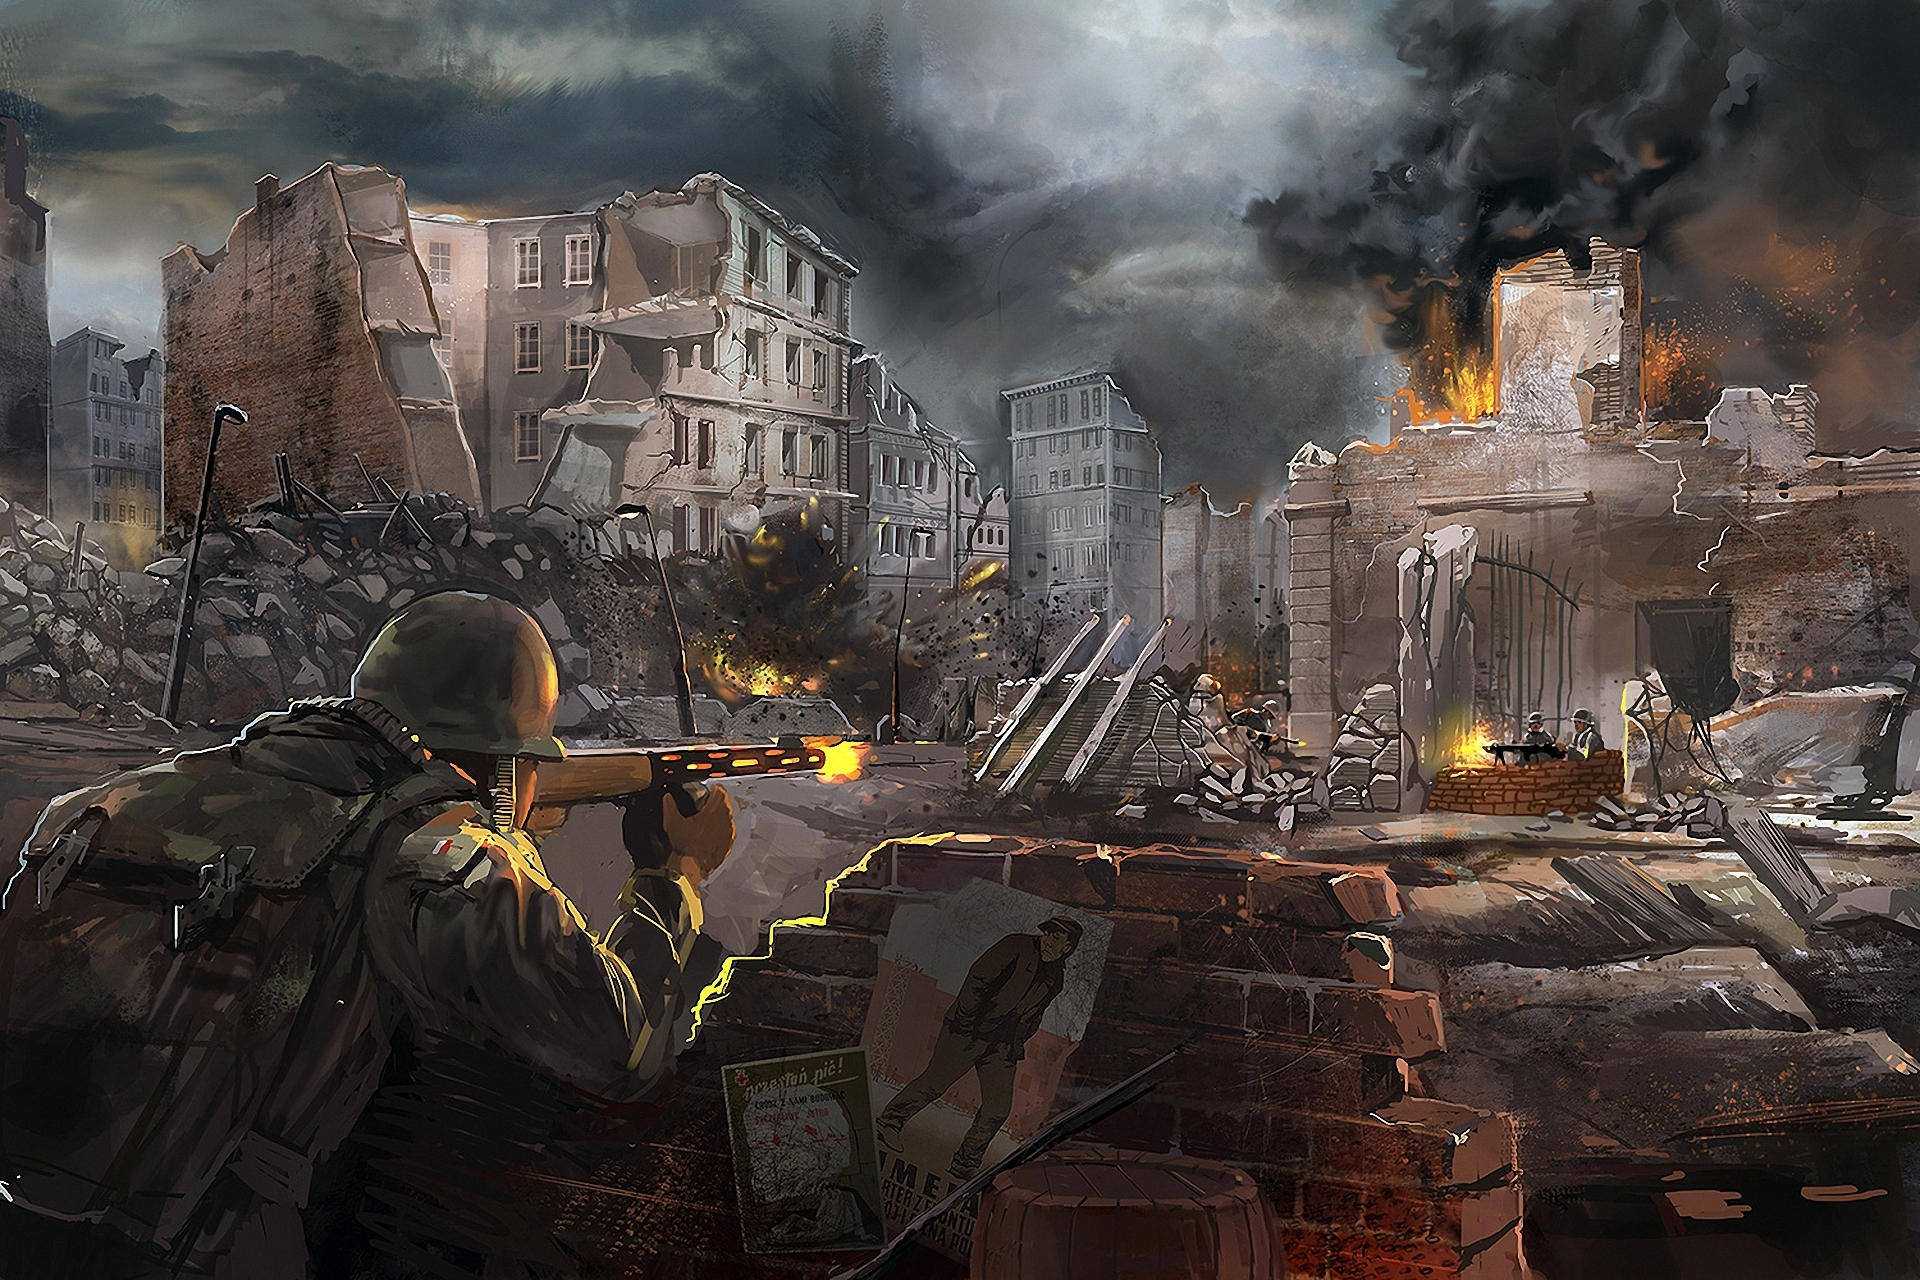 Call of duty military soldiers people weapons guns rifles - Intire decrution ...